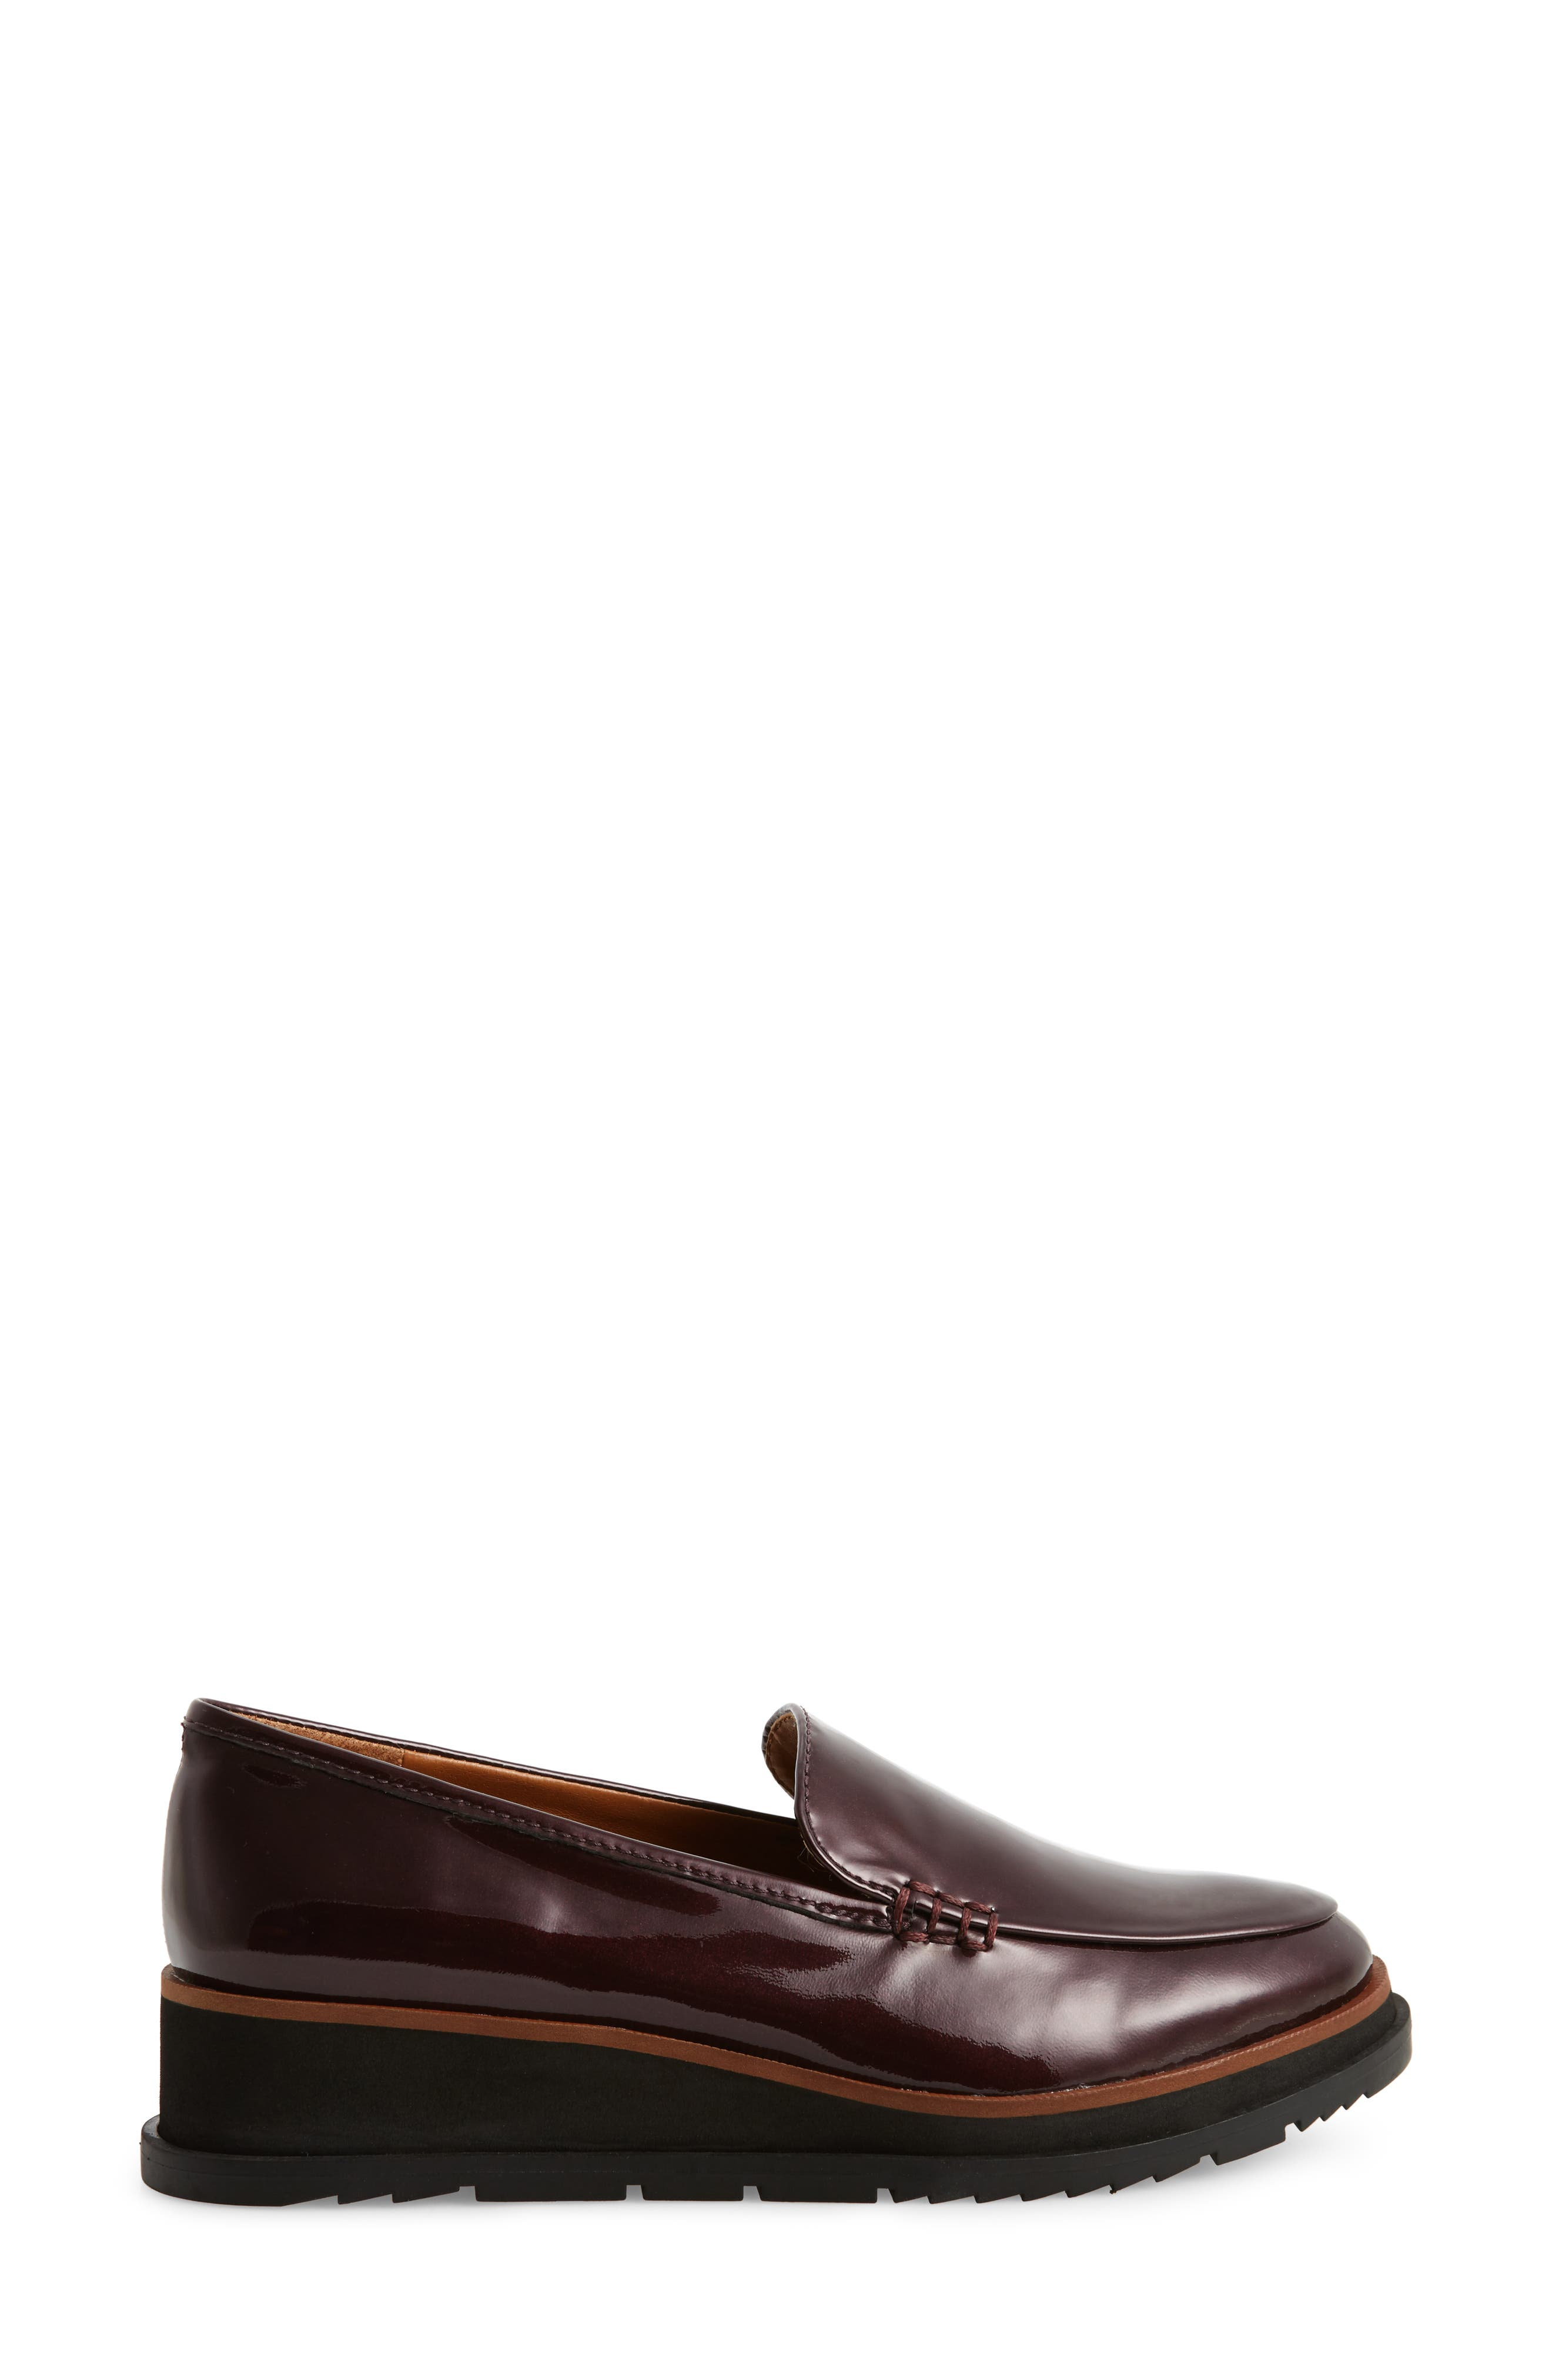 Ayers Loafer Flat,                             Alternate thumbnail 25, color,